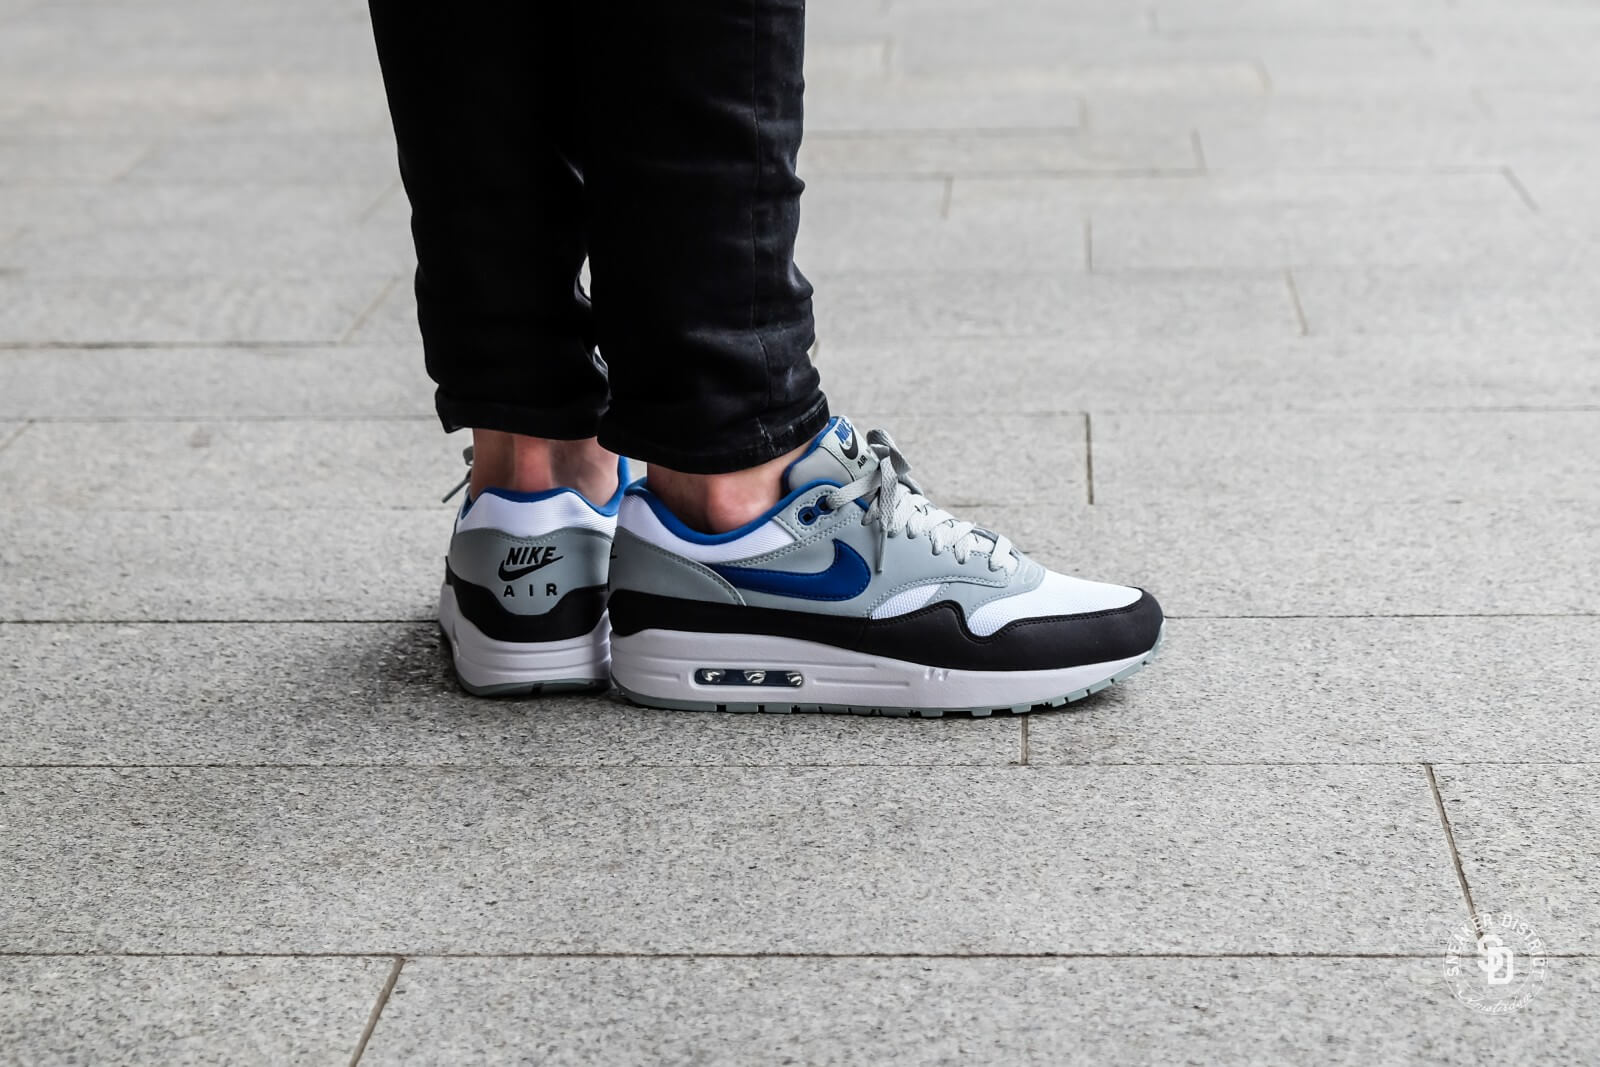 Nike Air Max 1 WhiteGym Blue Light Pumice Black For Sale